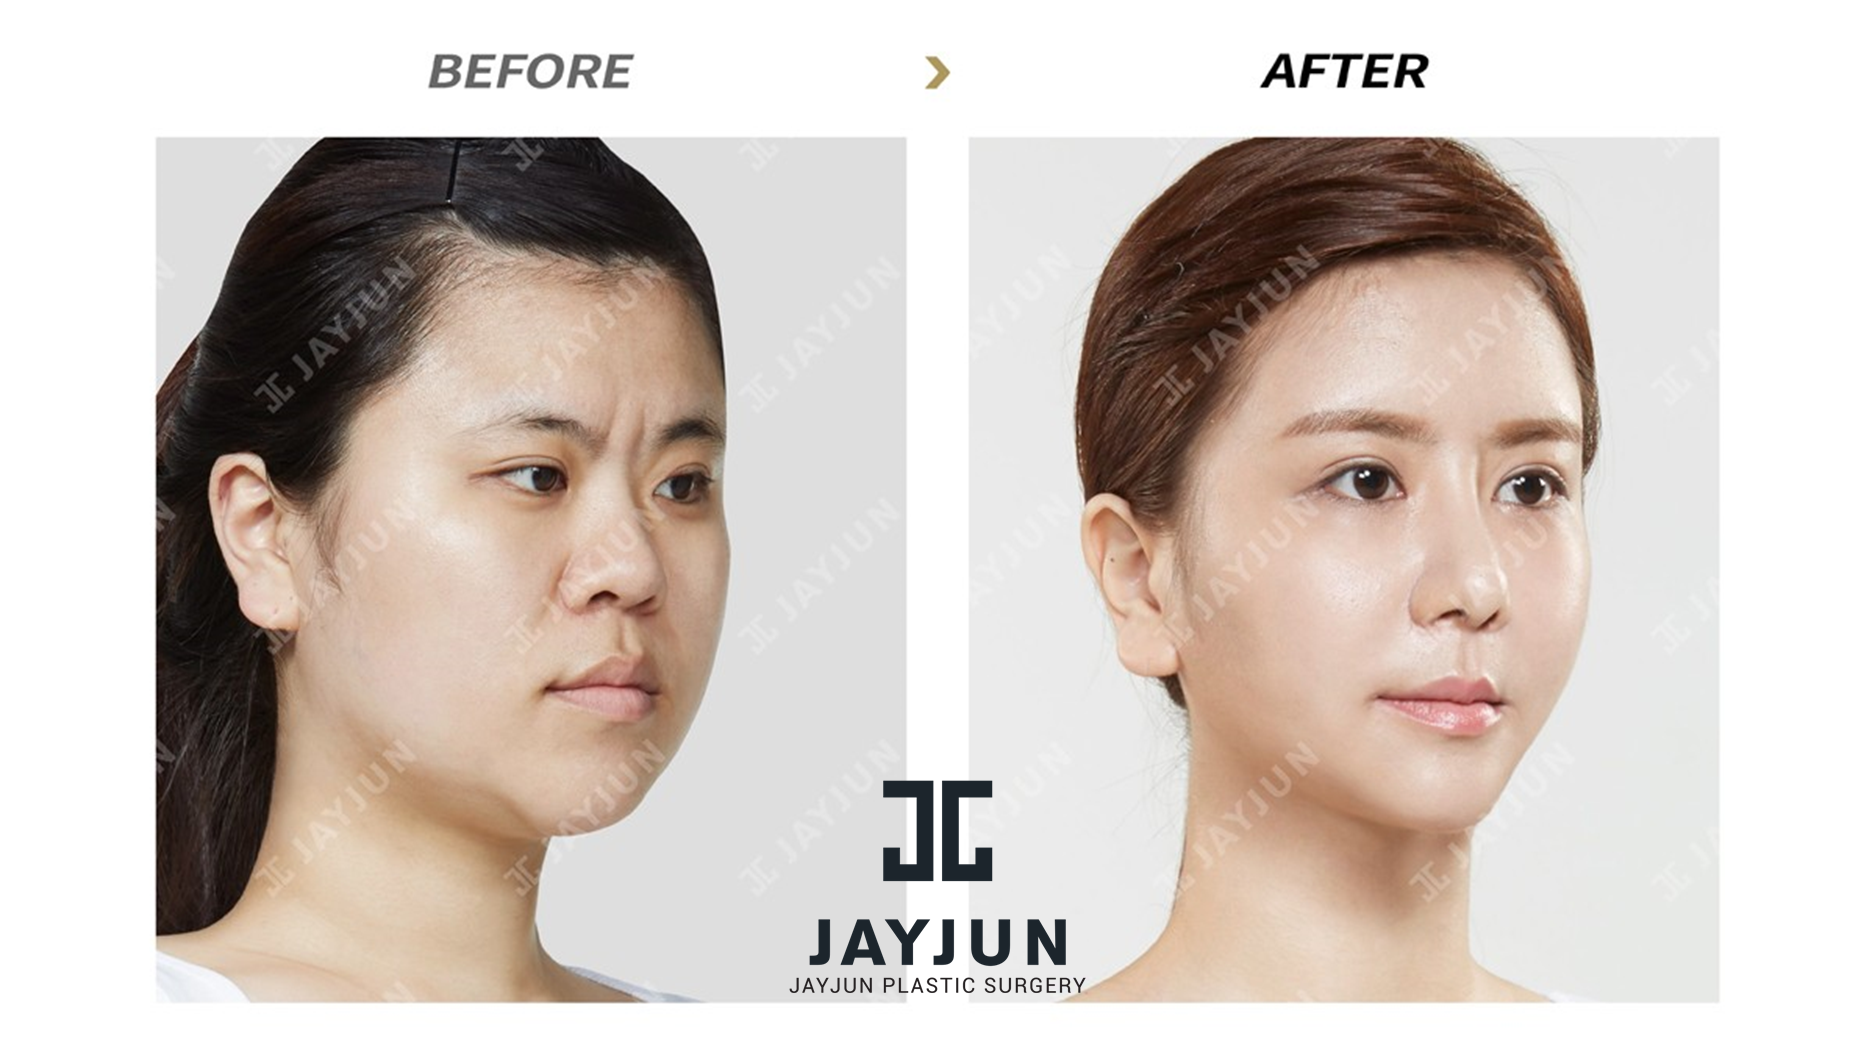 facial contouring surgery in korea korea facial contouring korean